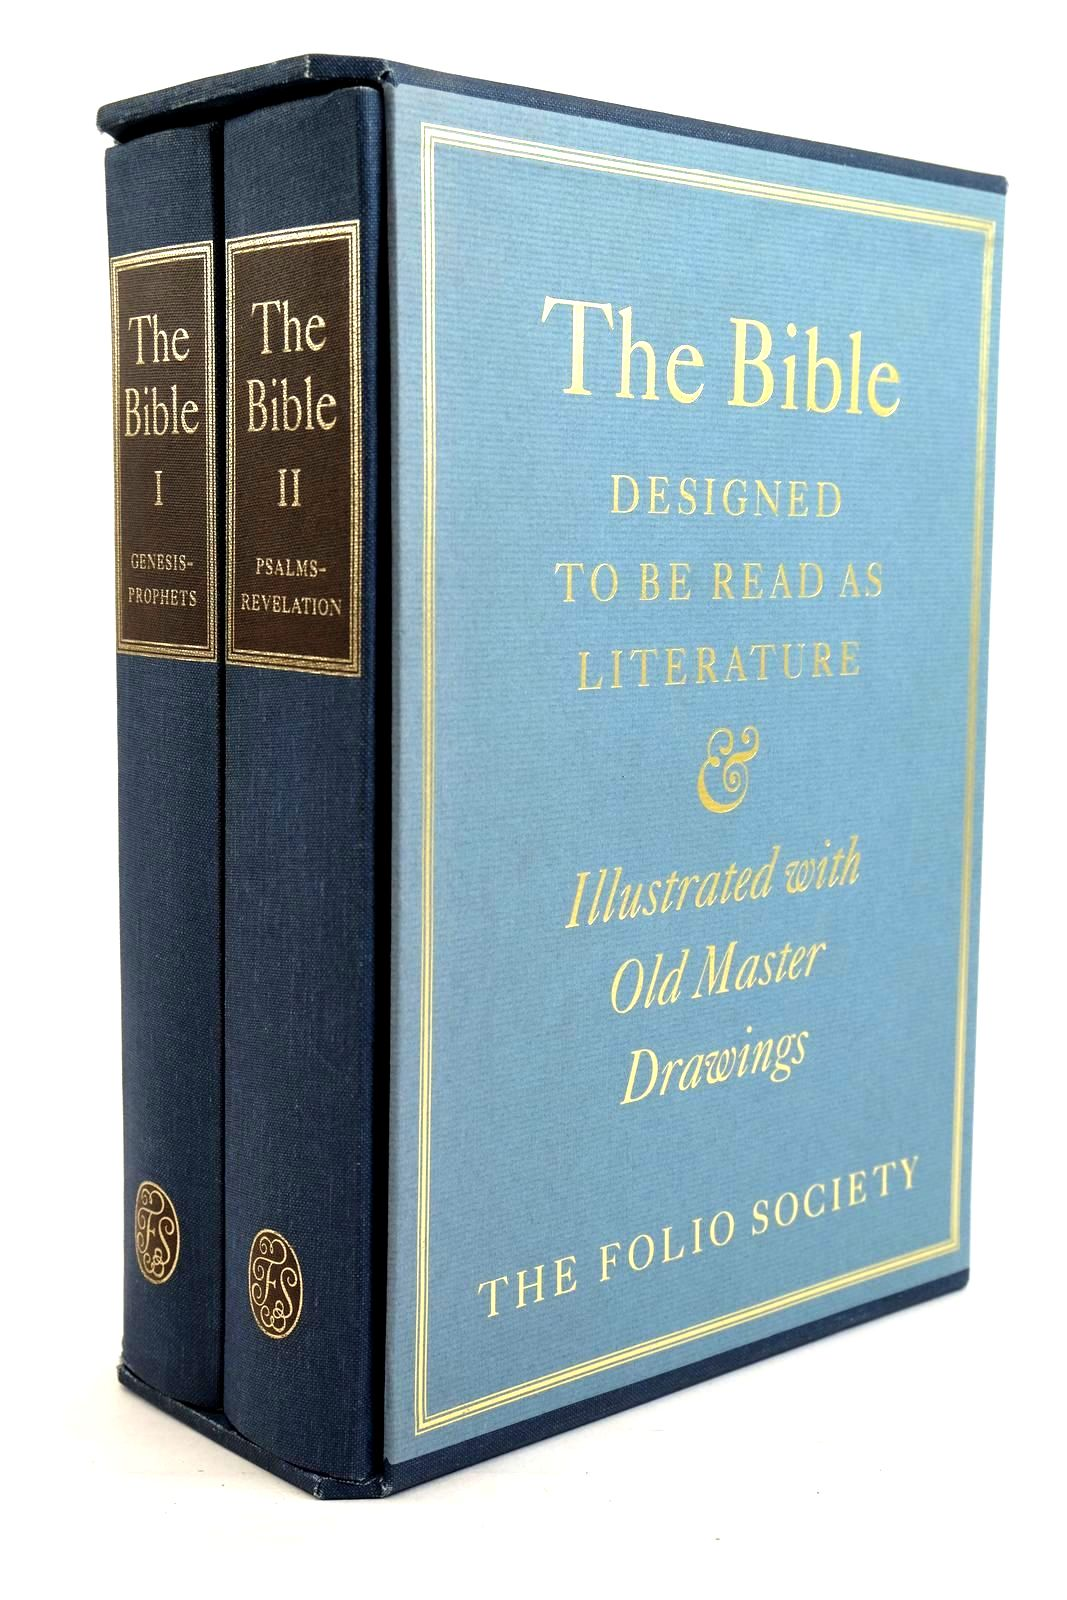 Photo of THE BIBLE DESIGNED TO BE READ AS LITERATURE (2 VOLUMES) written by Bates, Ernest Sutherland published by Folio Society (STOCK CODE: 1320199)  for sale by Stella & Rose's Books